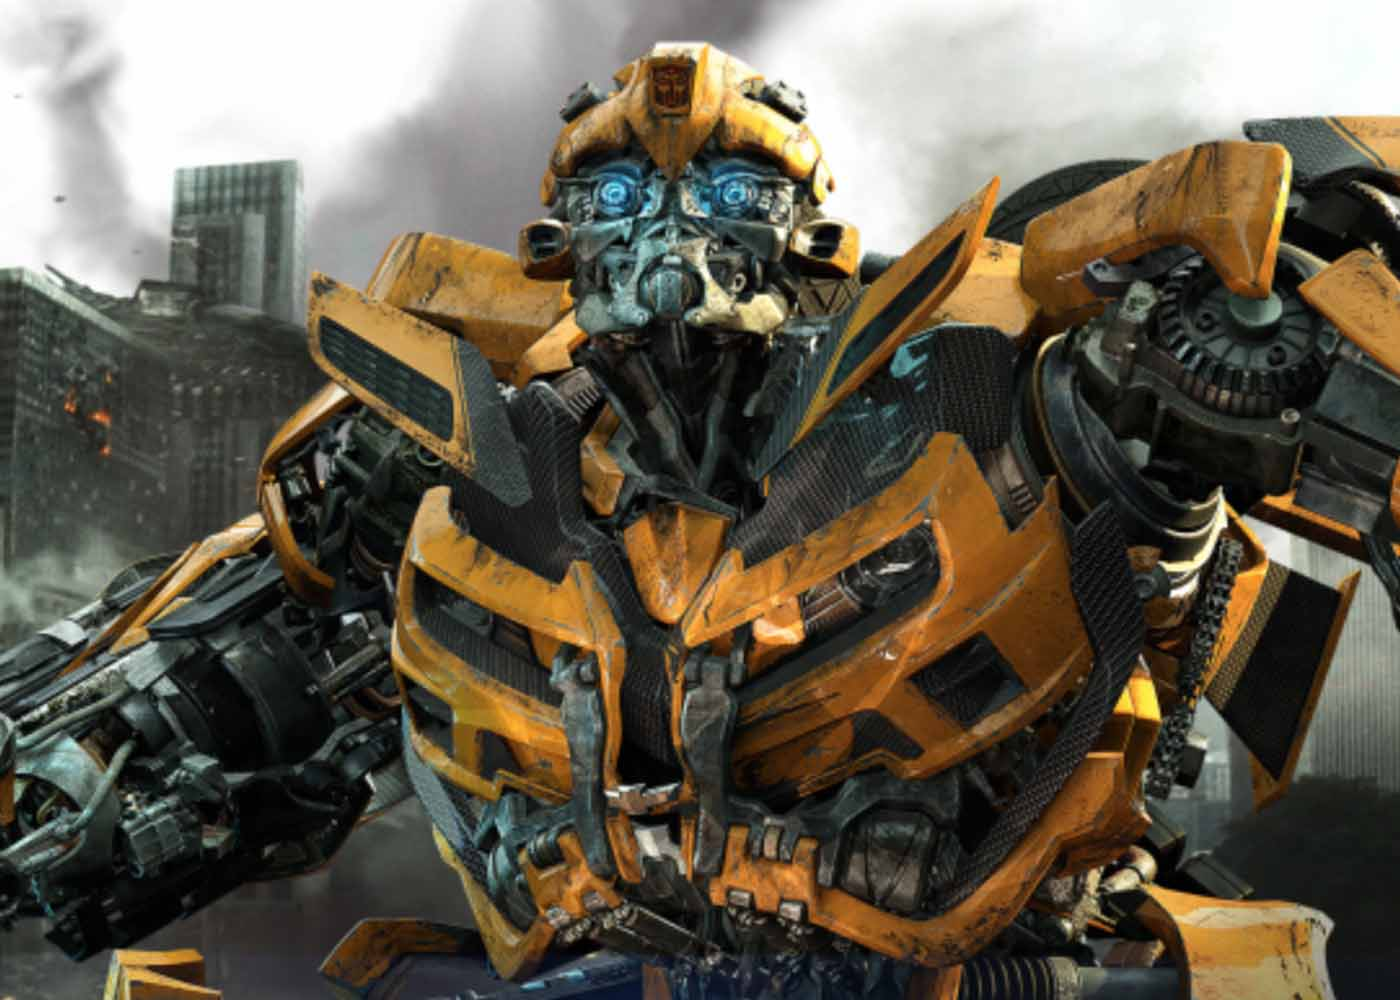 Bumblebee to take on Aquaman at Christmas